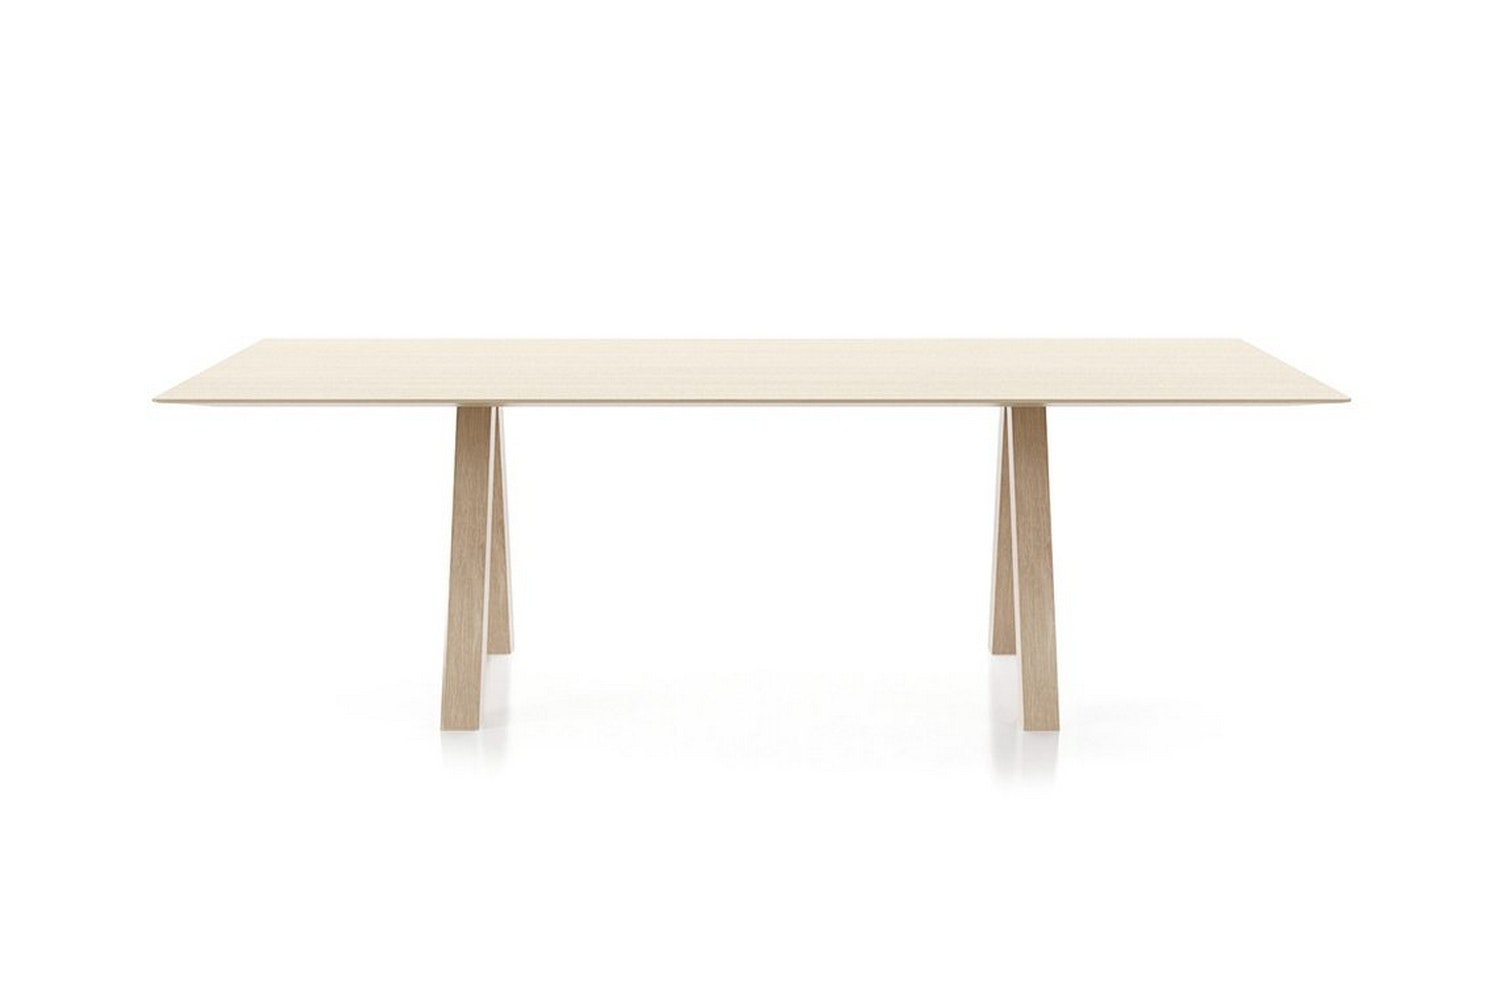 Trestle Table by John Pawson for Viccarbe